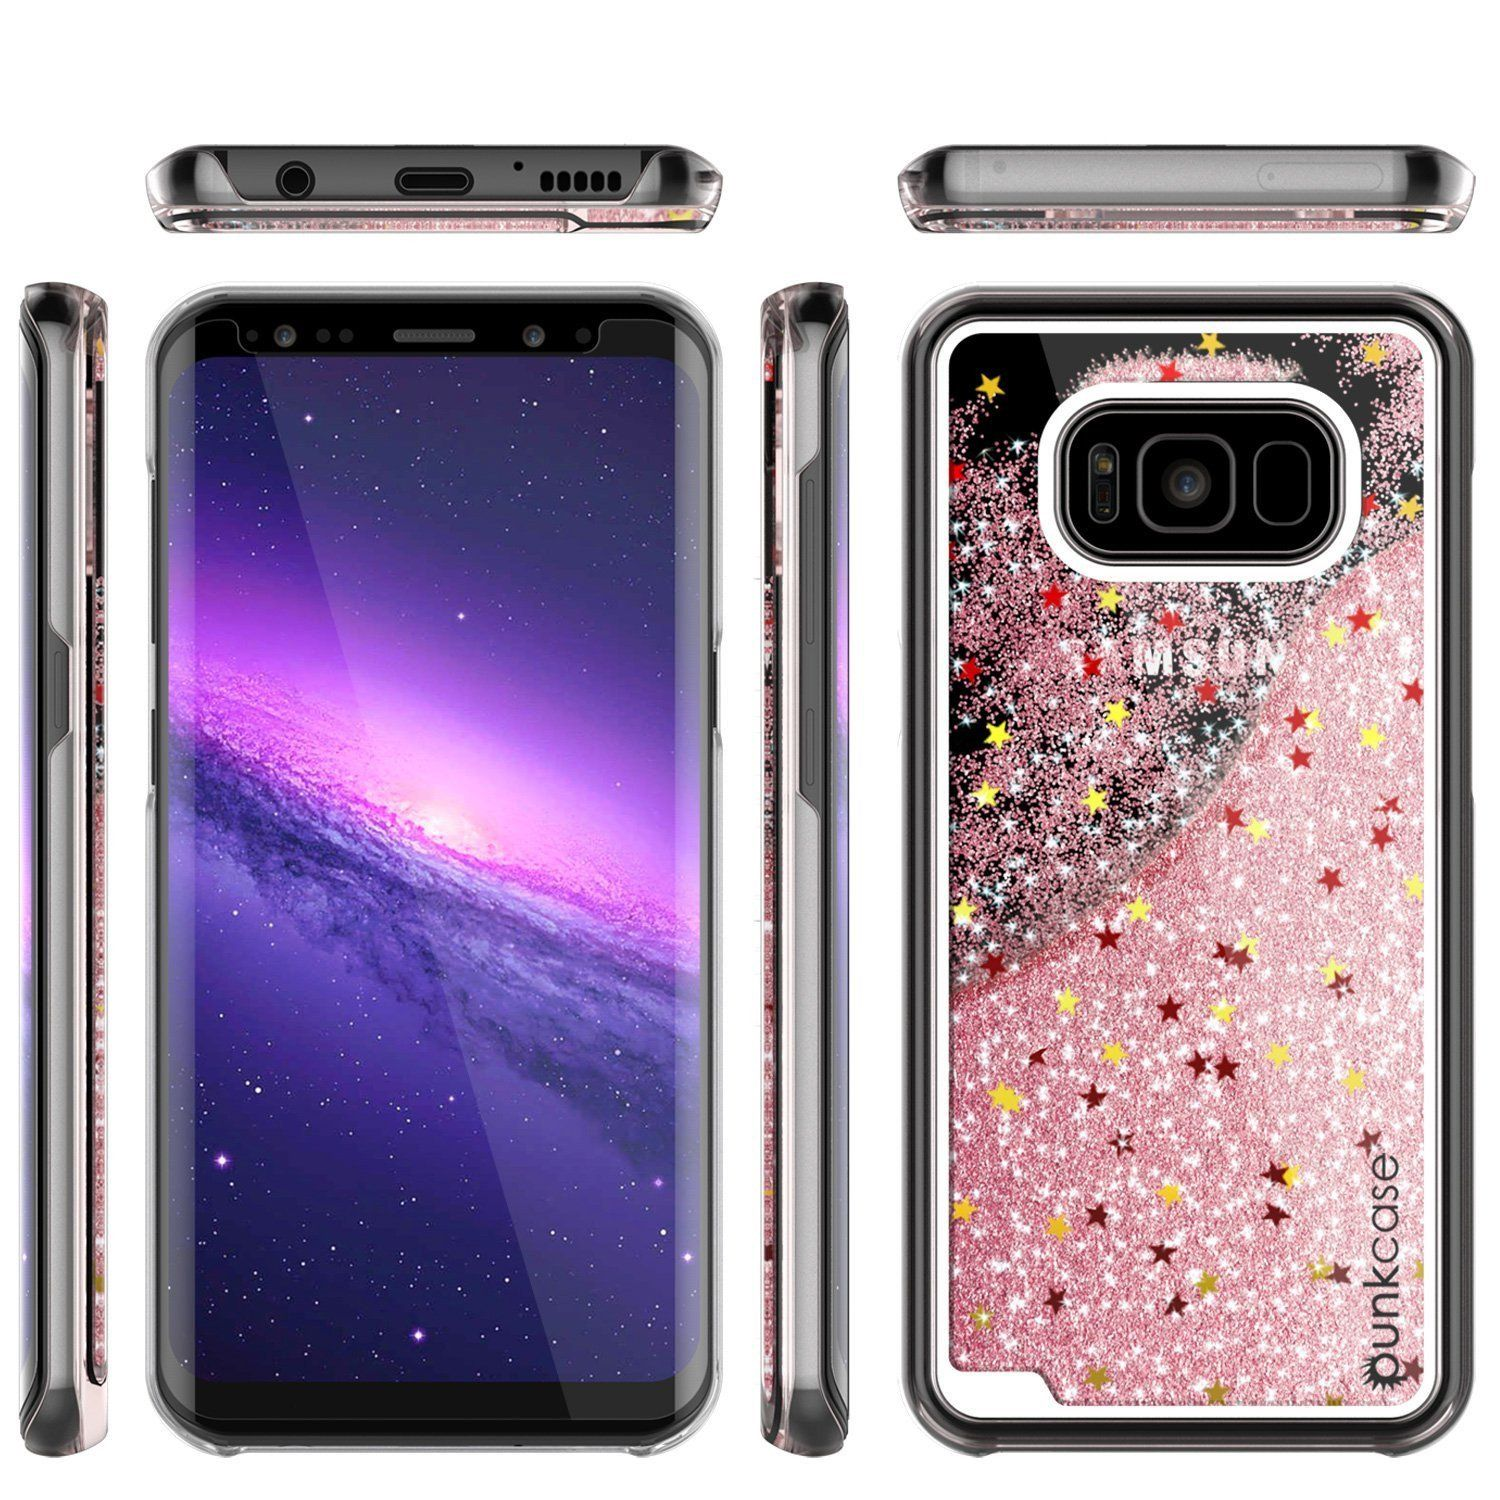 Galaxy S8 Case Punkcase Liquid Rose Gold Series Protective Dual Layer Floating Glitter Cover Galaxy Galaxy S8 Dual Layer